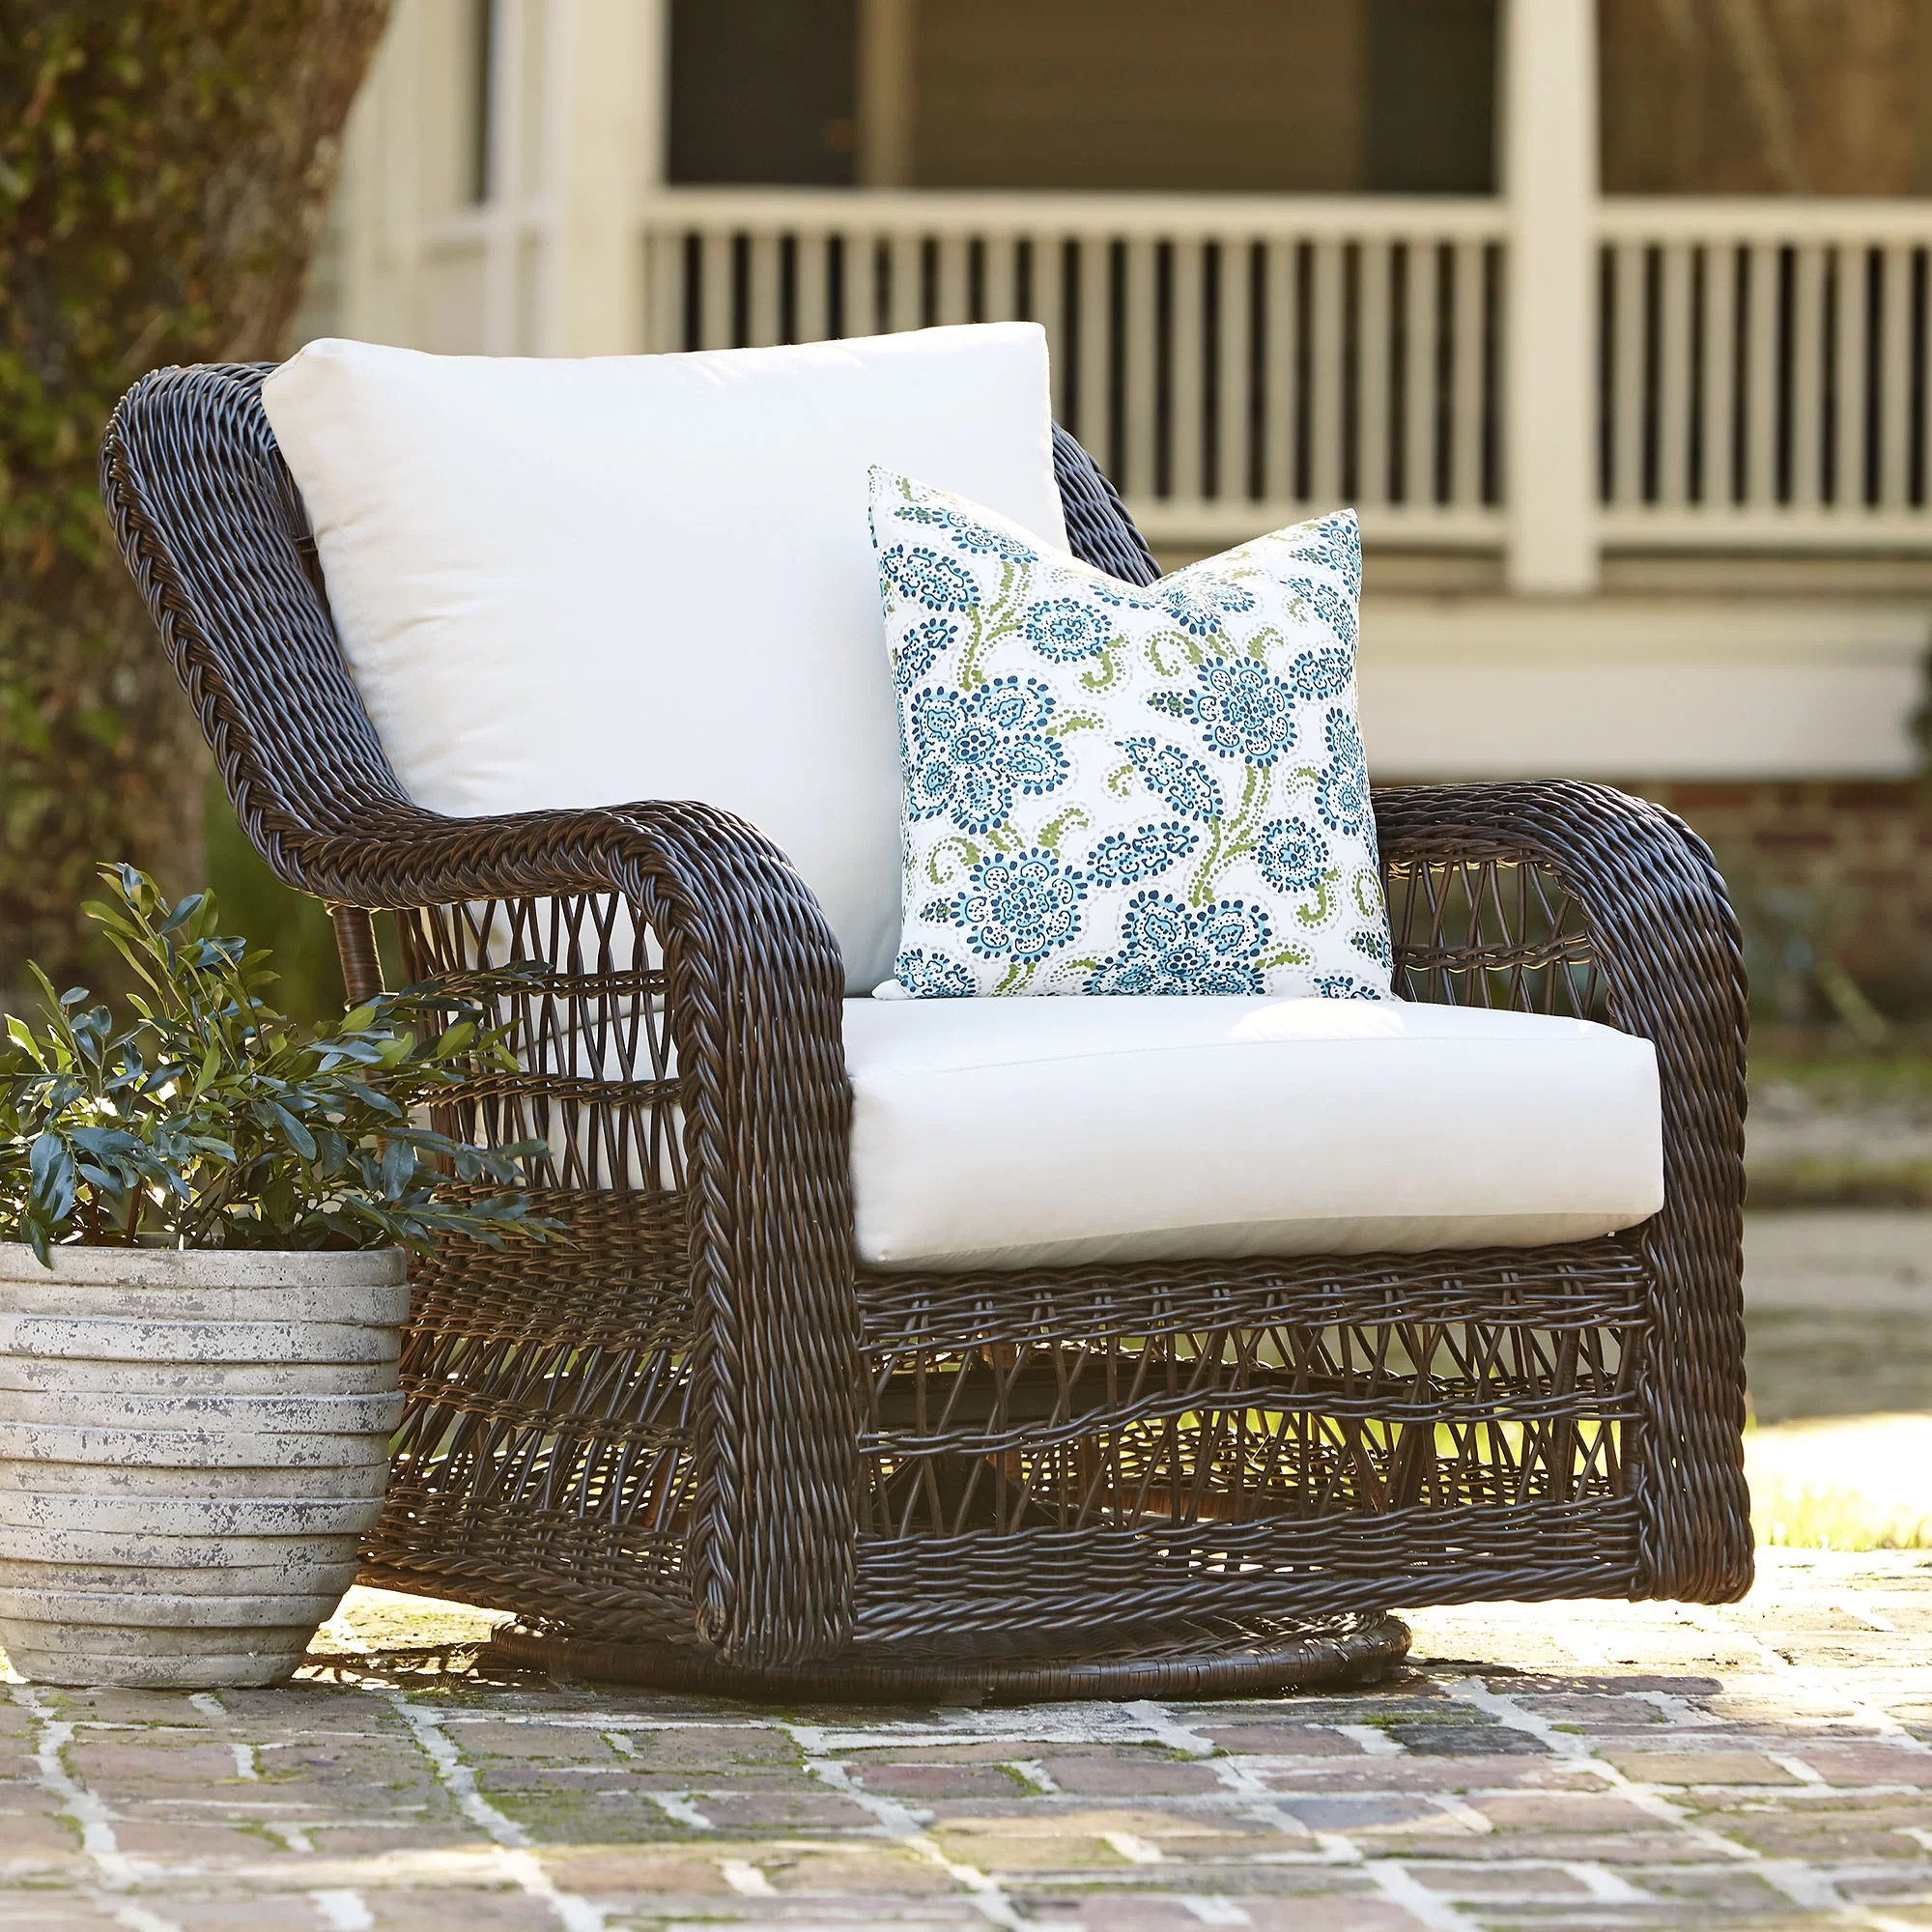 seat cushions for wicker chairs tables and chair rentals birch lane rosemead with sunbrella